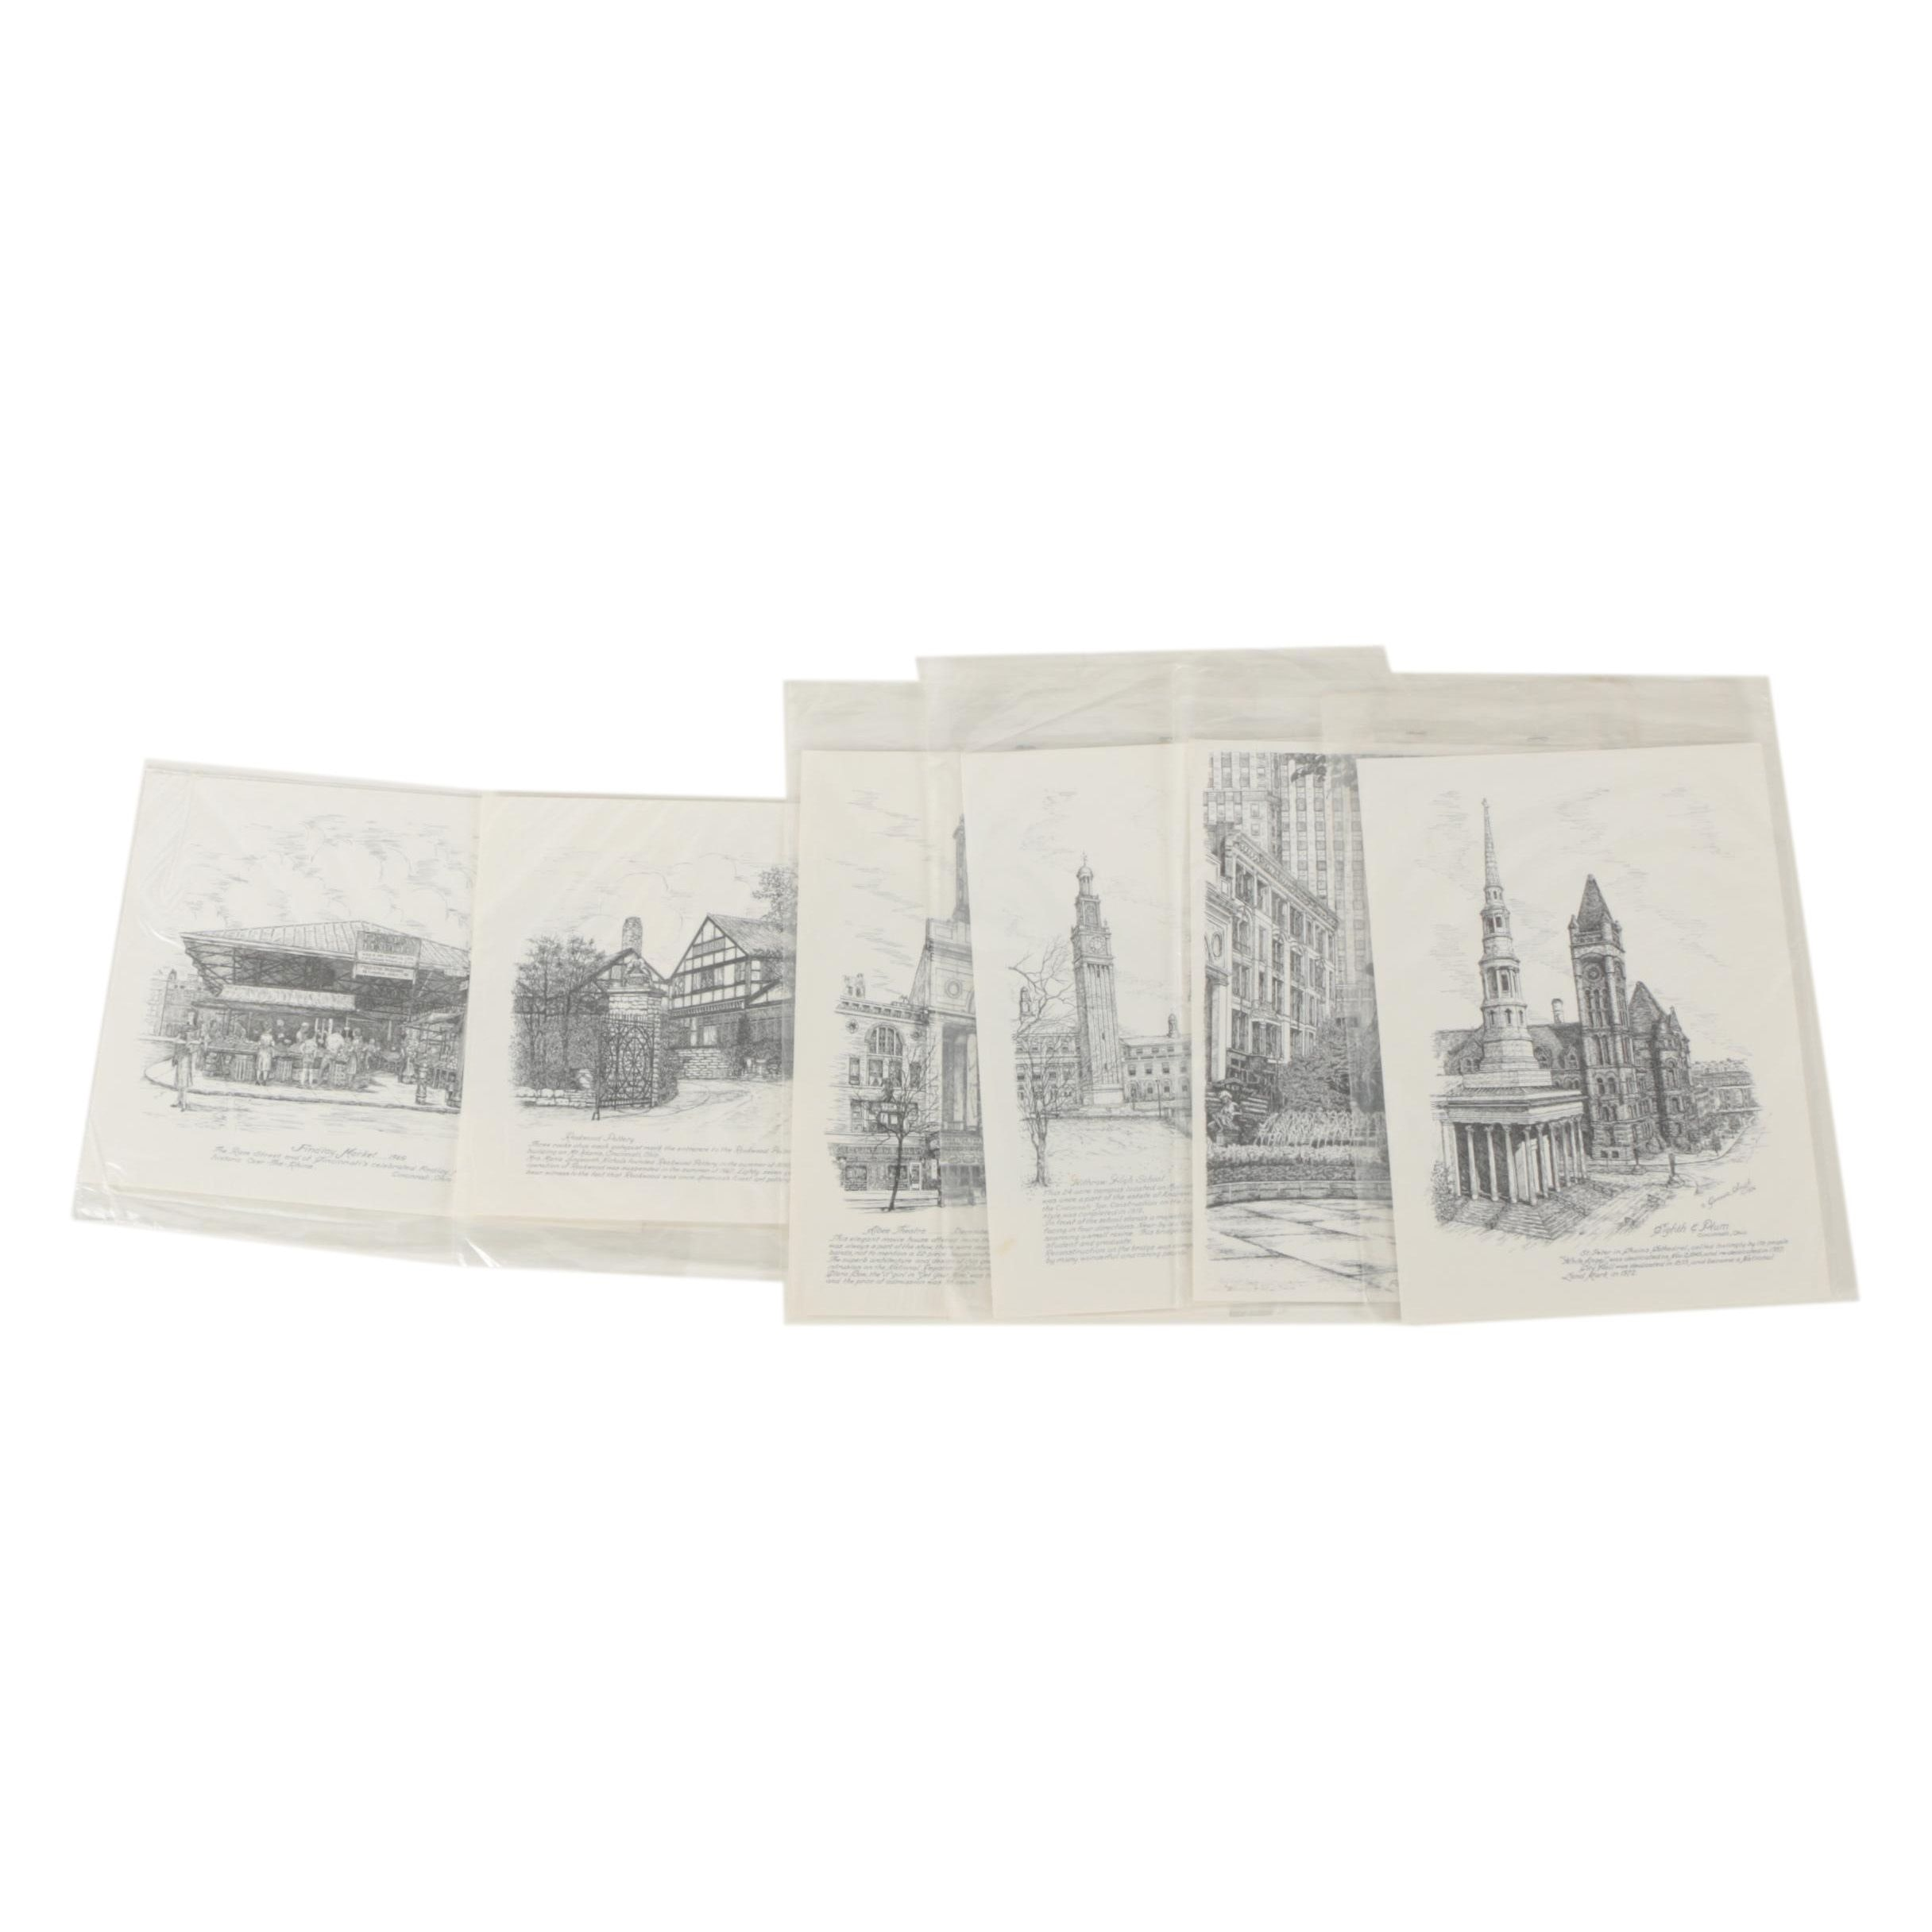 Lithographs After Geneva South of Cincinnati Area Landmarks